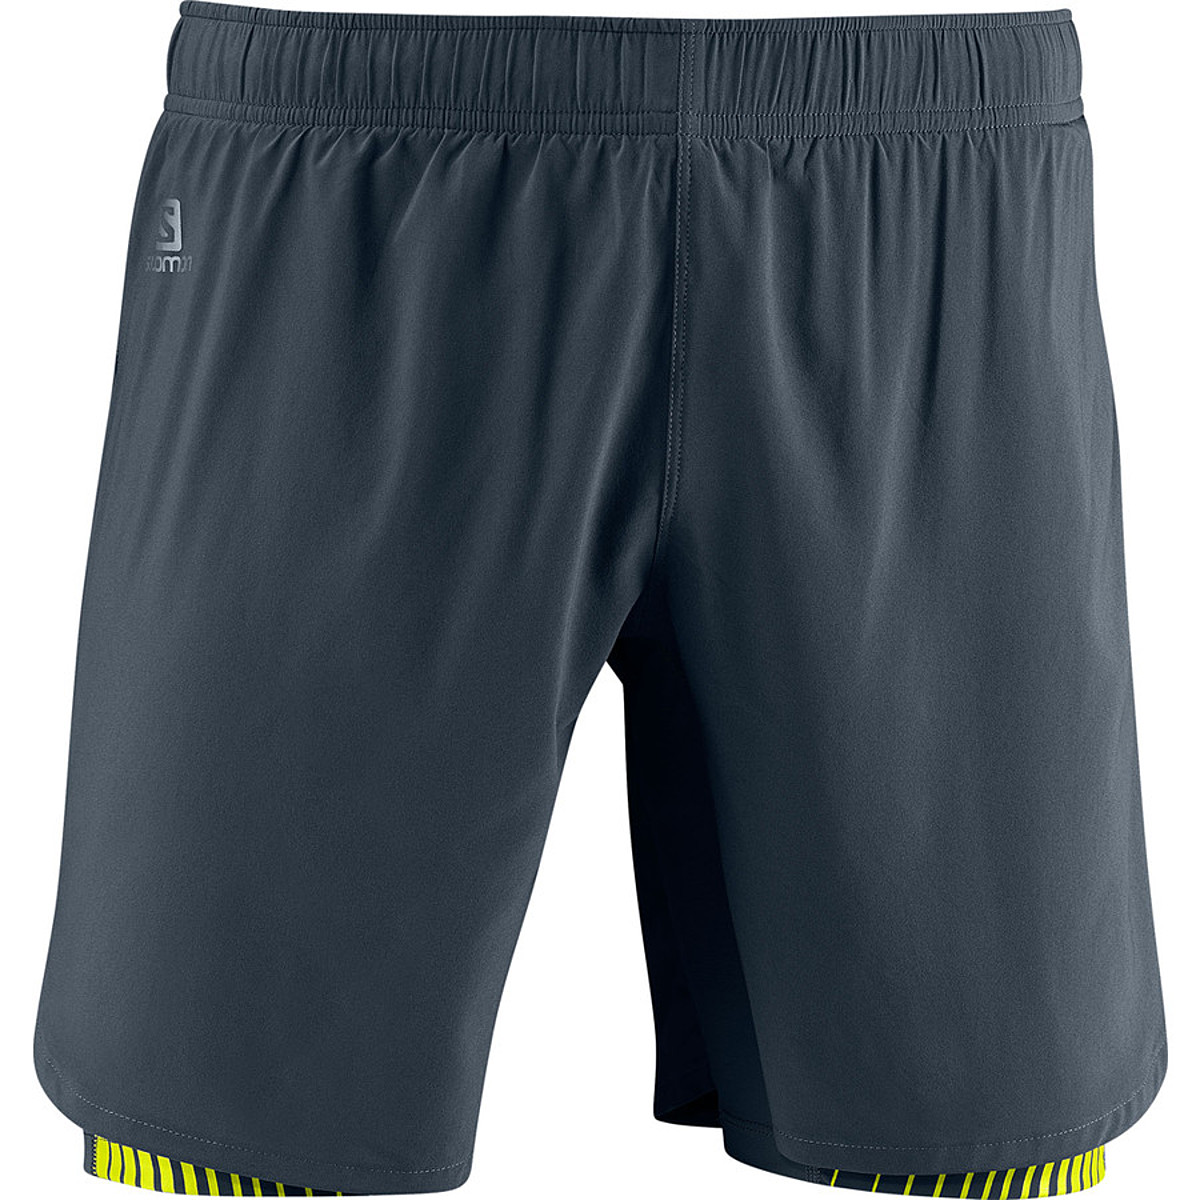 Salomon Endurance Twinskin Short